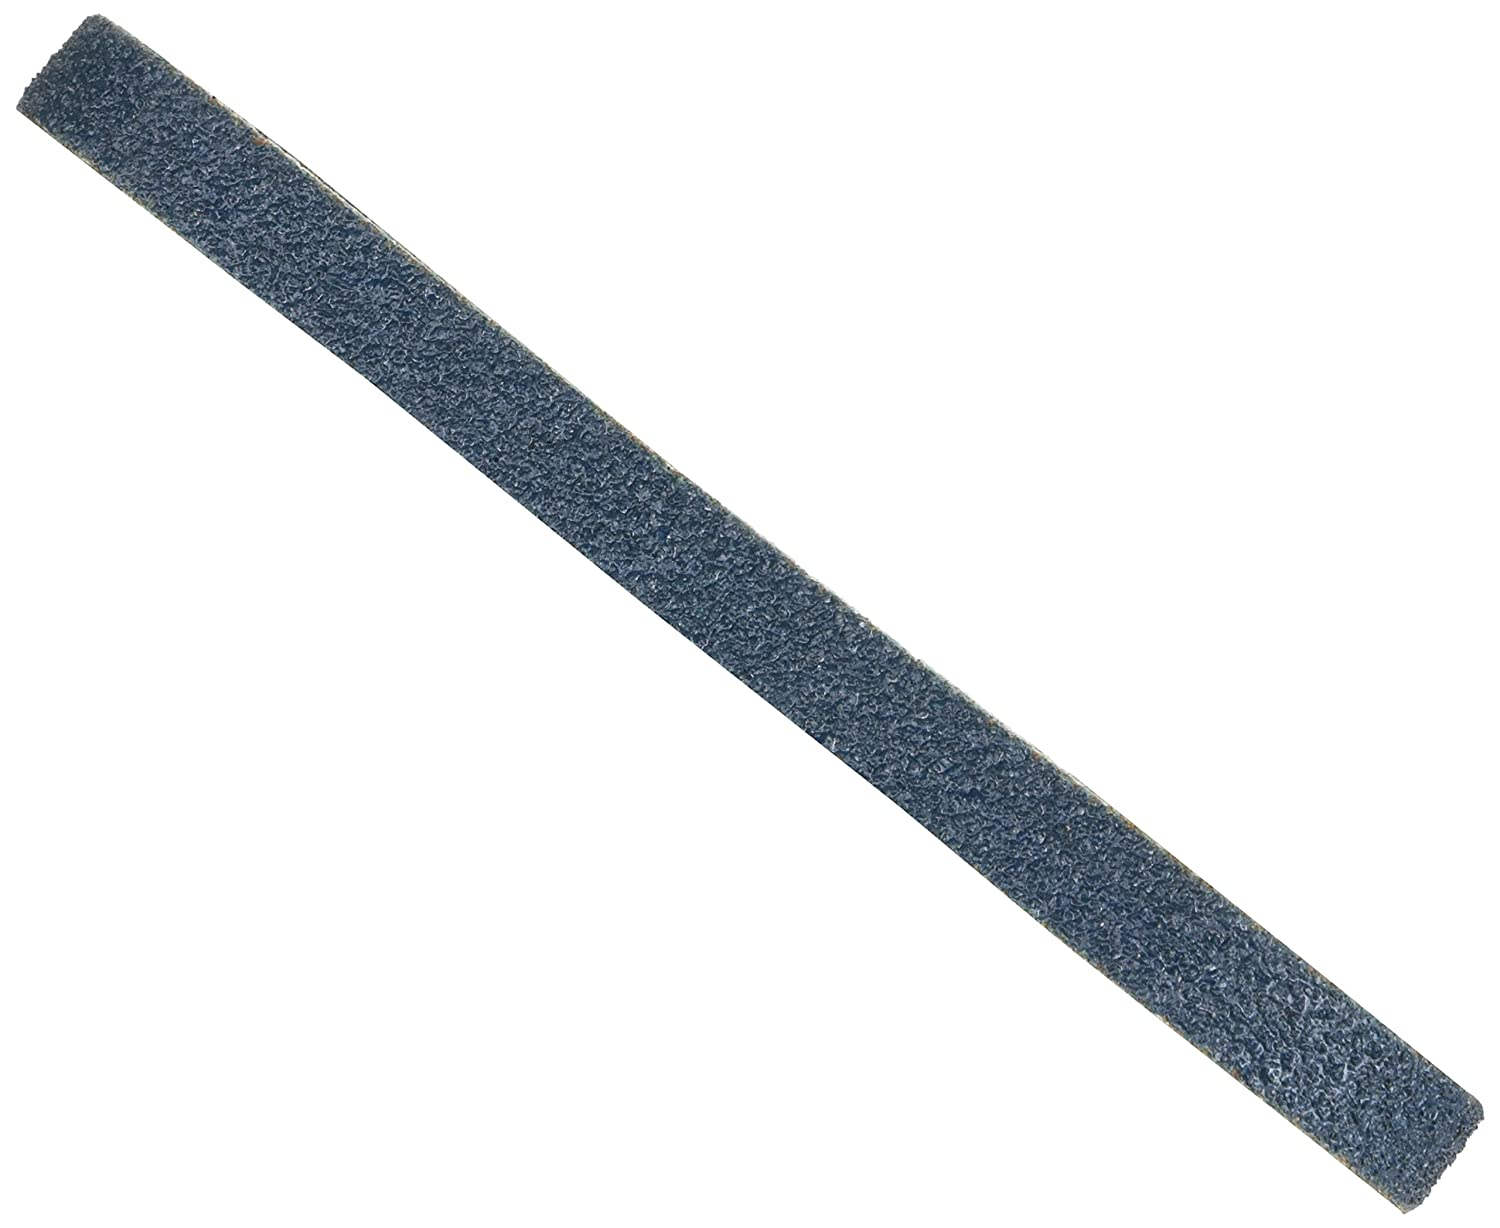 50 Grade 2 Width 132 Length Y-wt Zirconia Alumina Grit SIA Abrasives 0038.8045.0050 Series 2829 siaron Coated Abrasive Narrow Sanding Belt Pack of 10